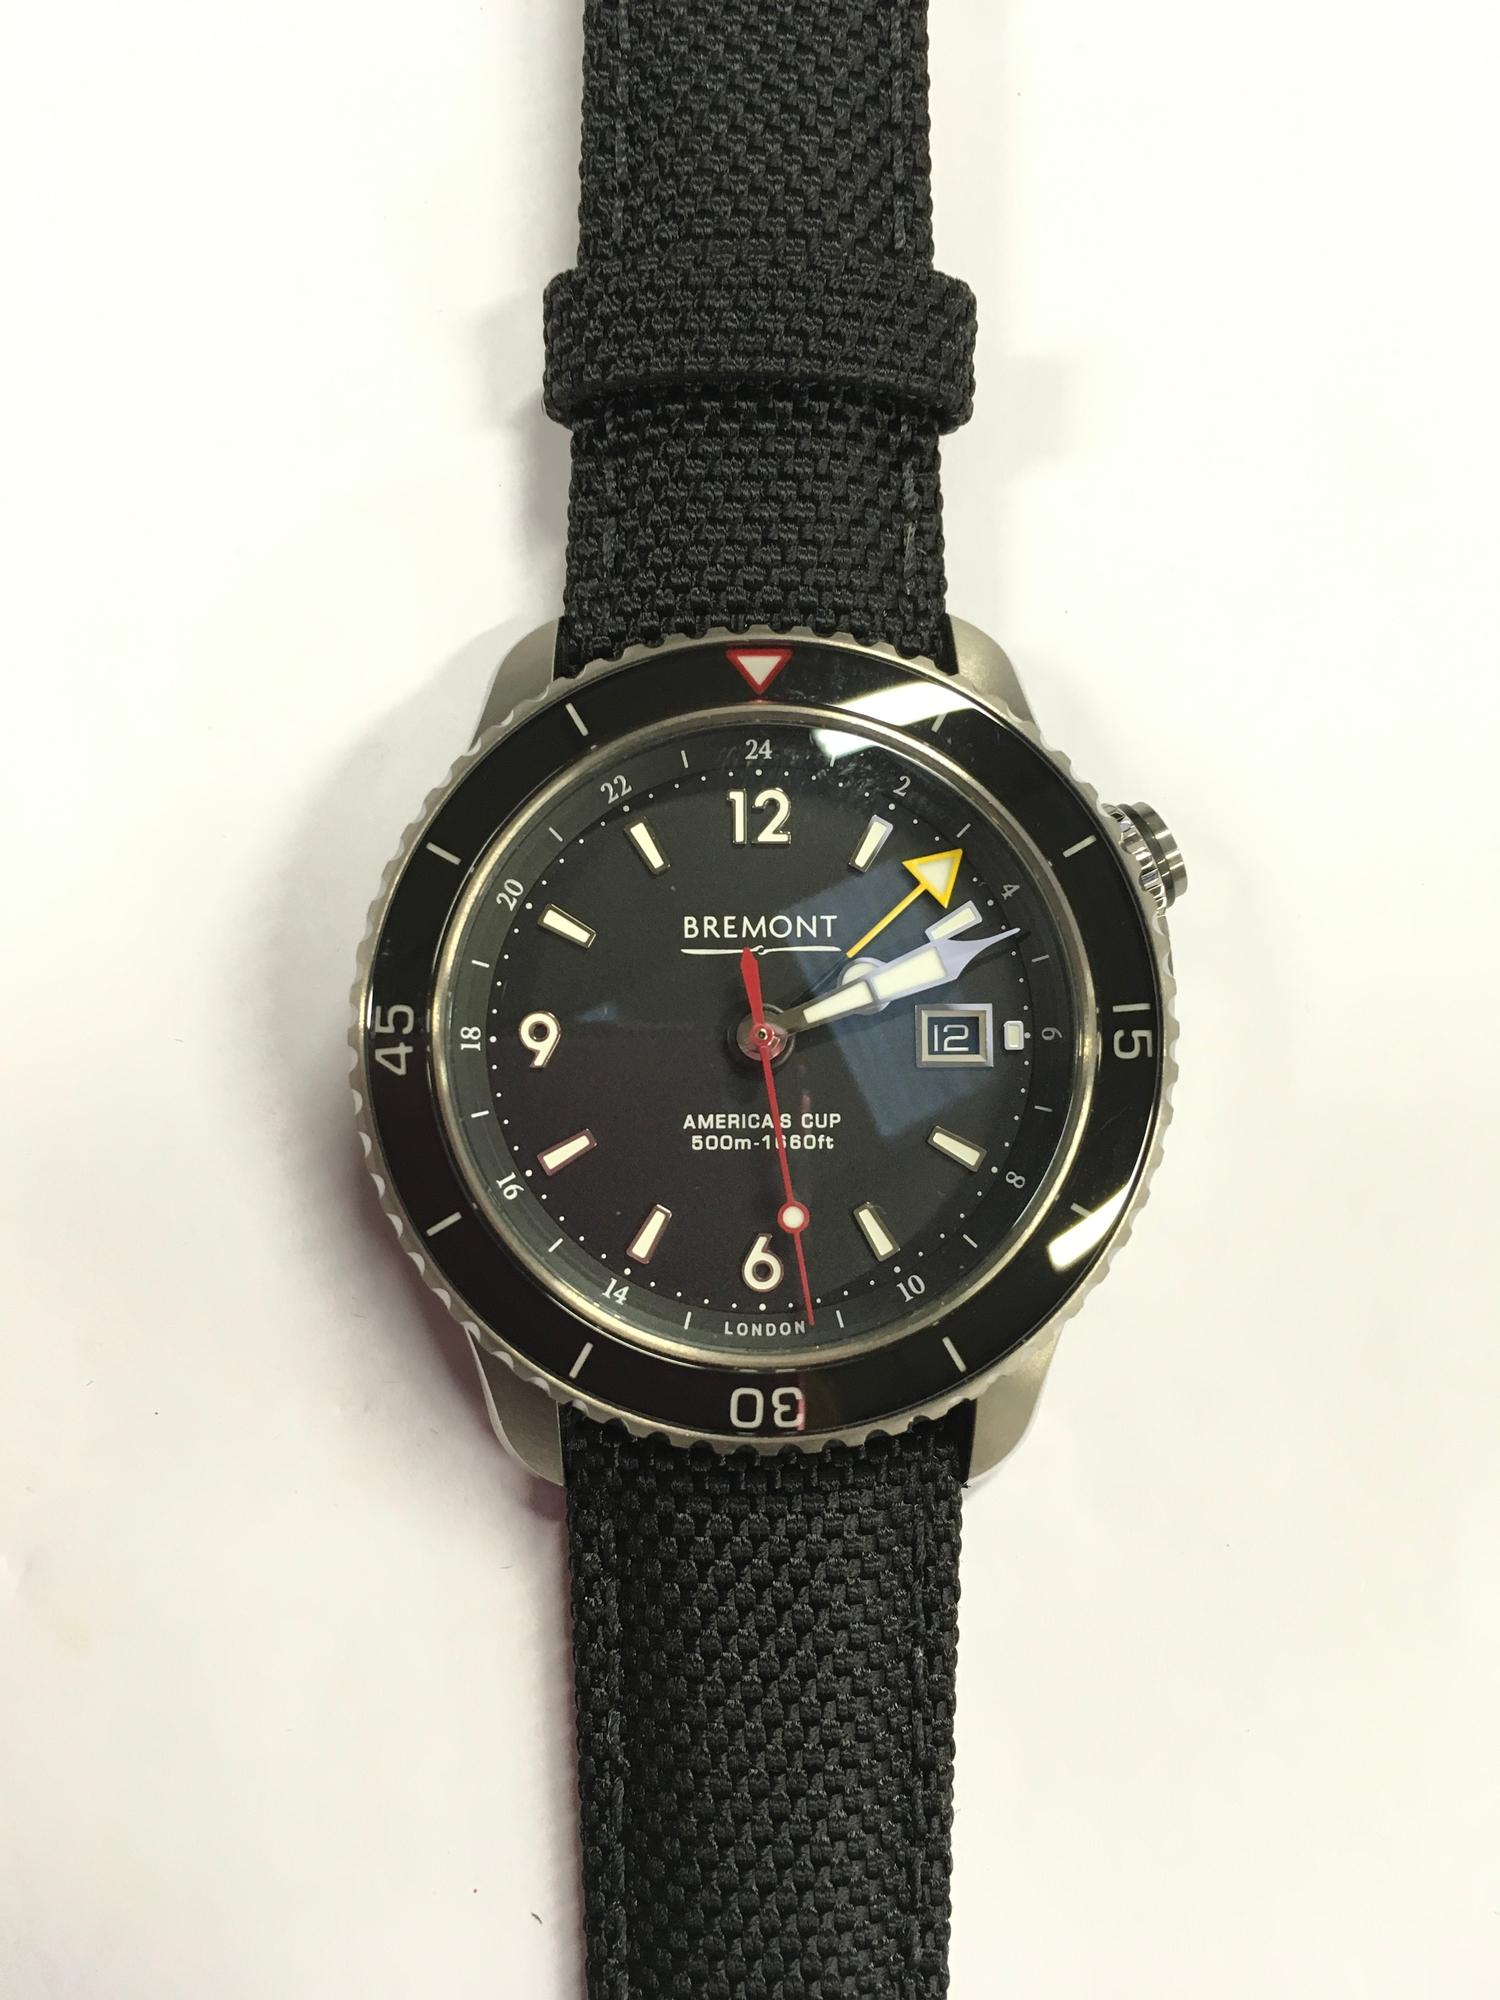 Stainless Steel Bremont America's Cup Watch, as new and complete, Limited Edition No 007/535.